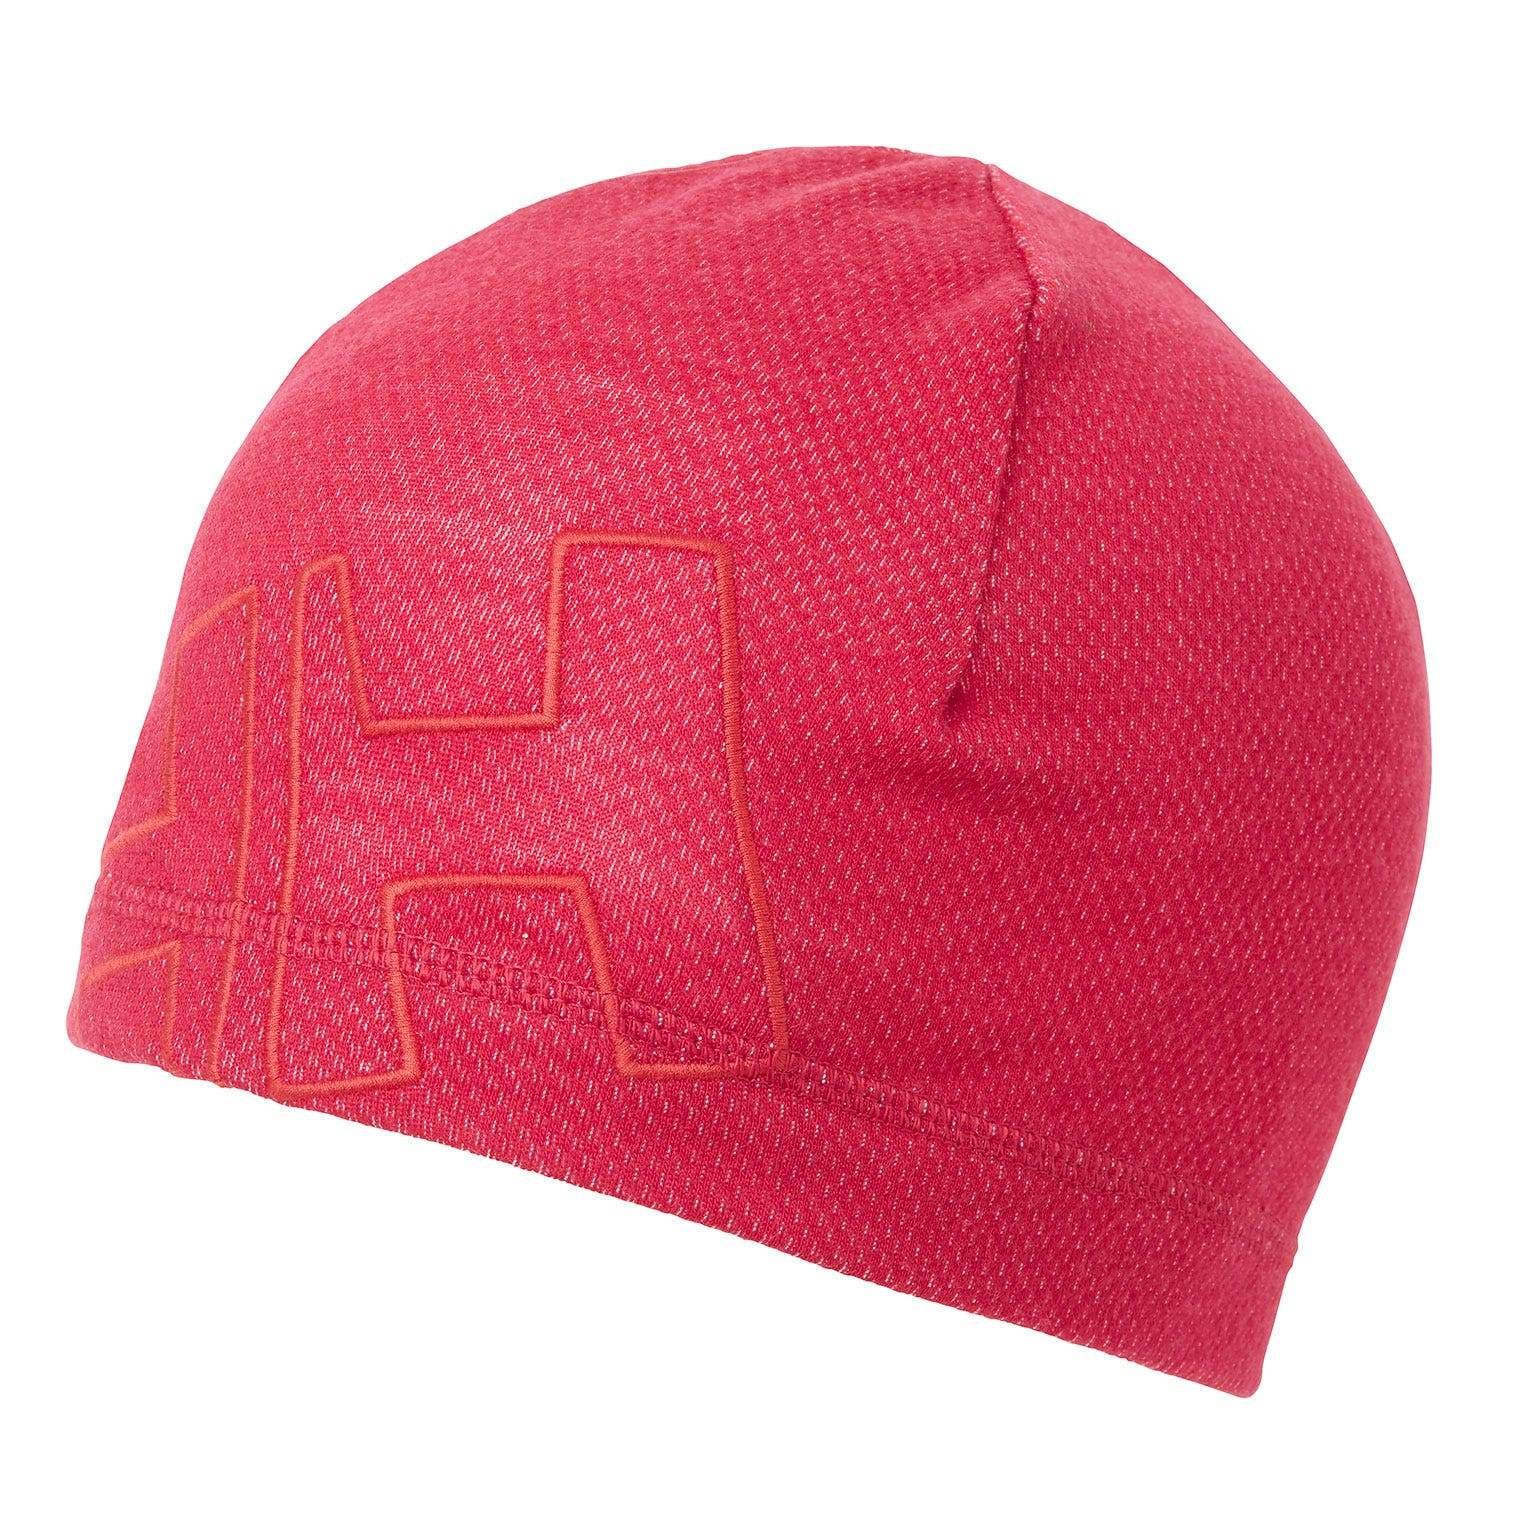 Helly Hansen Warm Beanie Pink STD